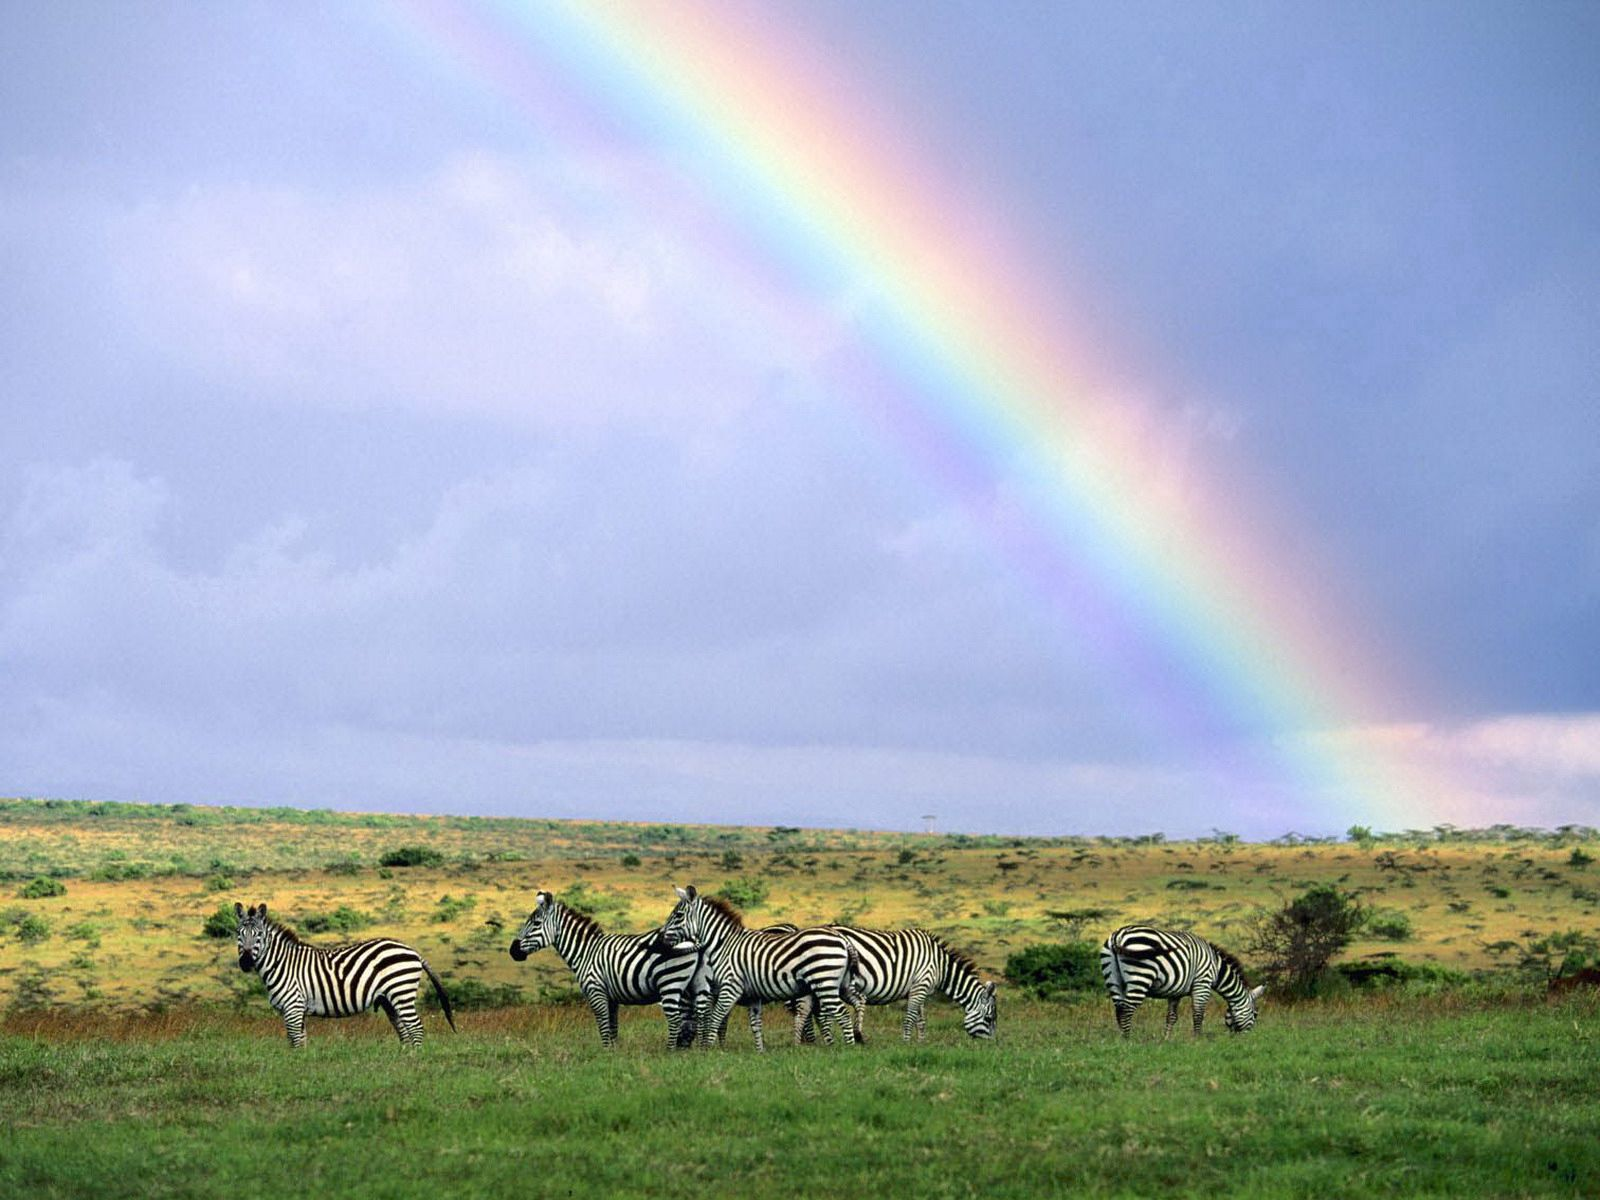 141460 download wallpaper Nature, Wildlife, Rainbow, After The Rain, Zebra screensavers and pictures for free